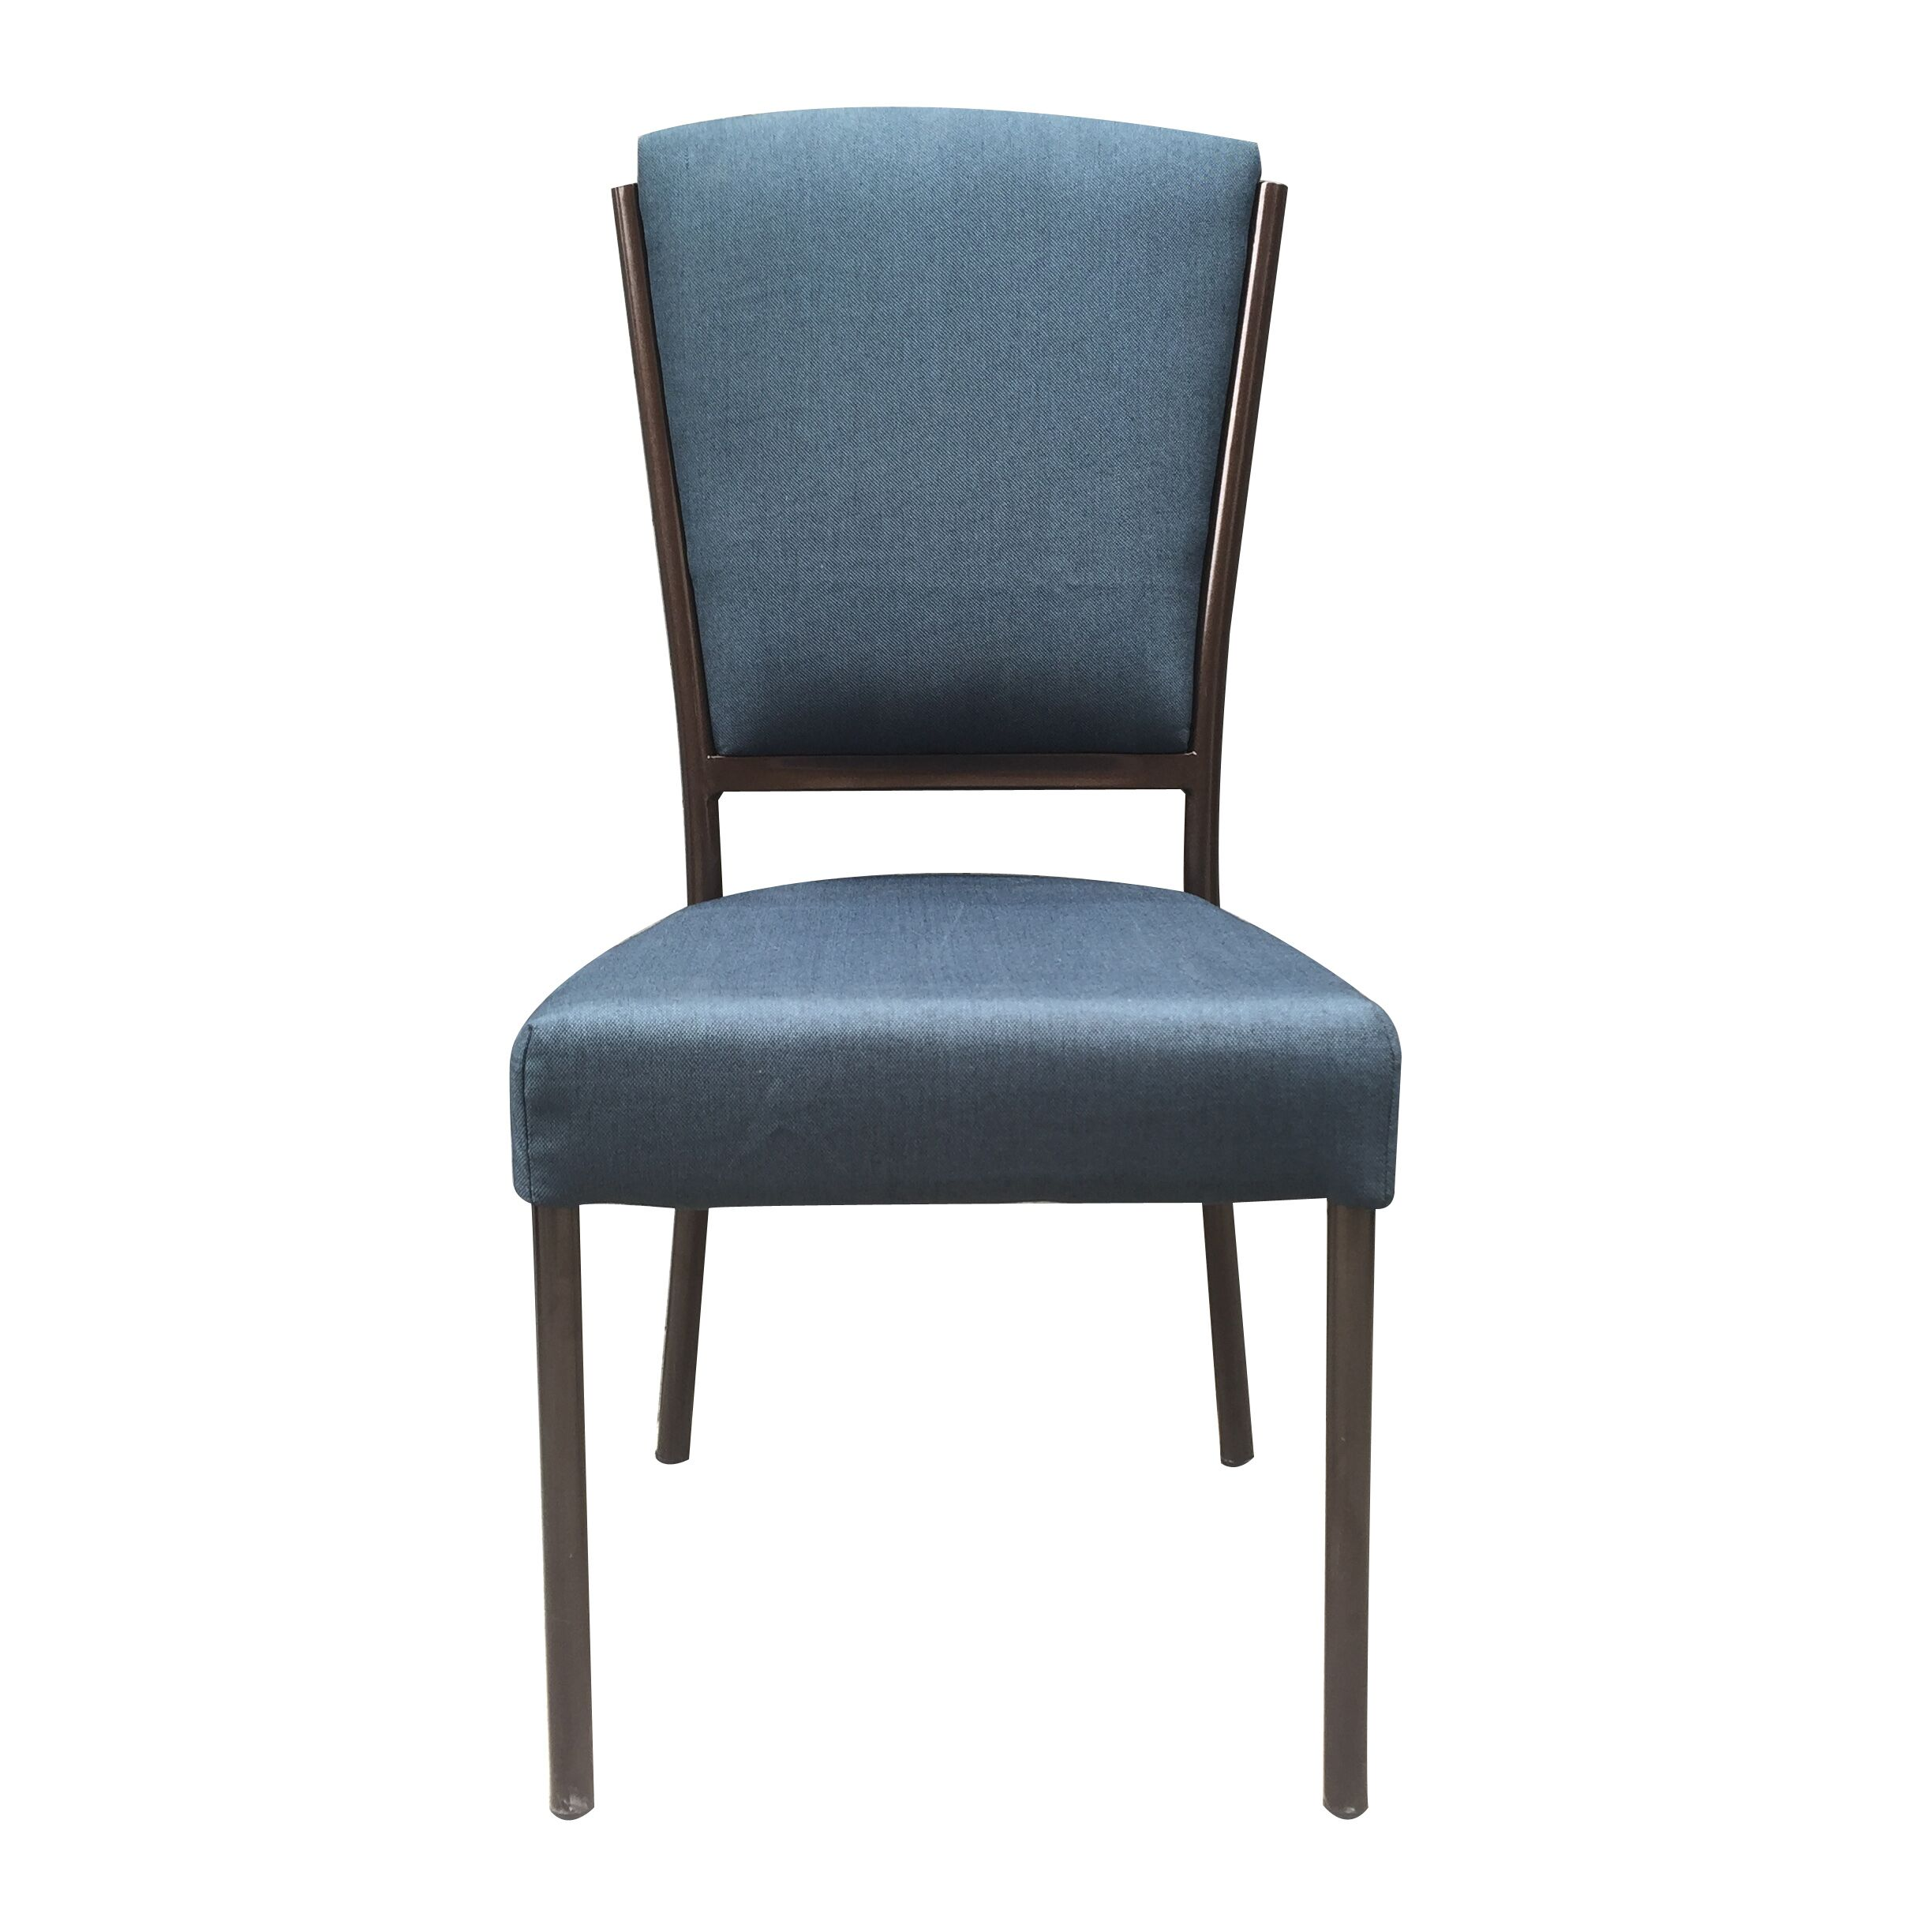 Buy Used Banquet Chairs SF-L17 Featured Image